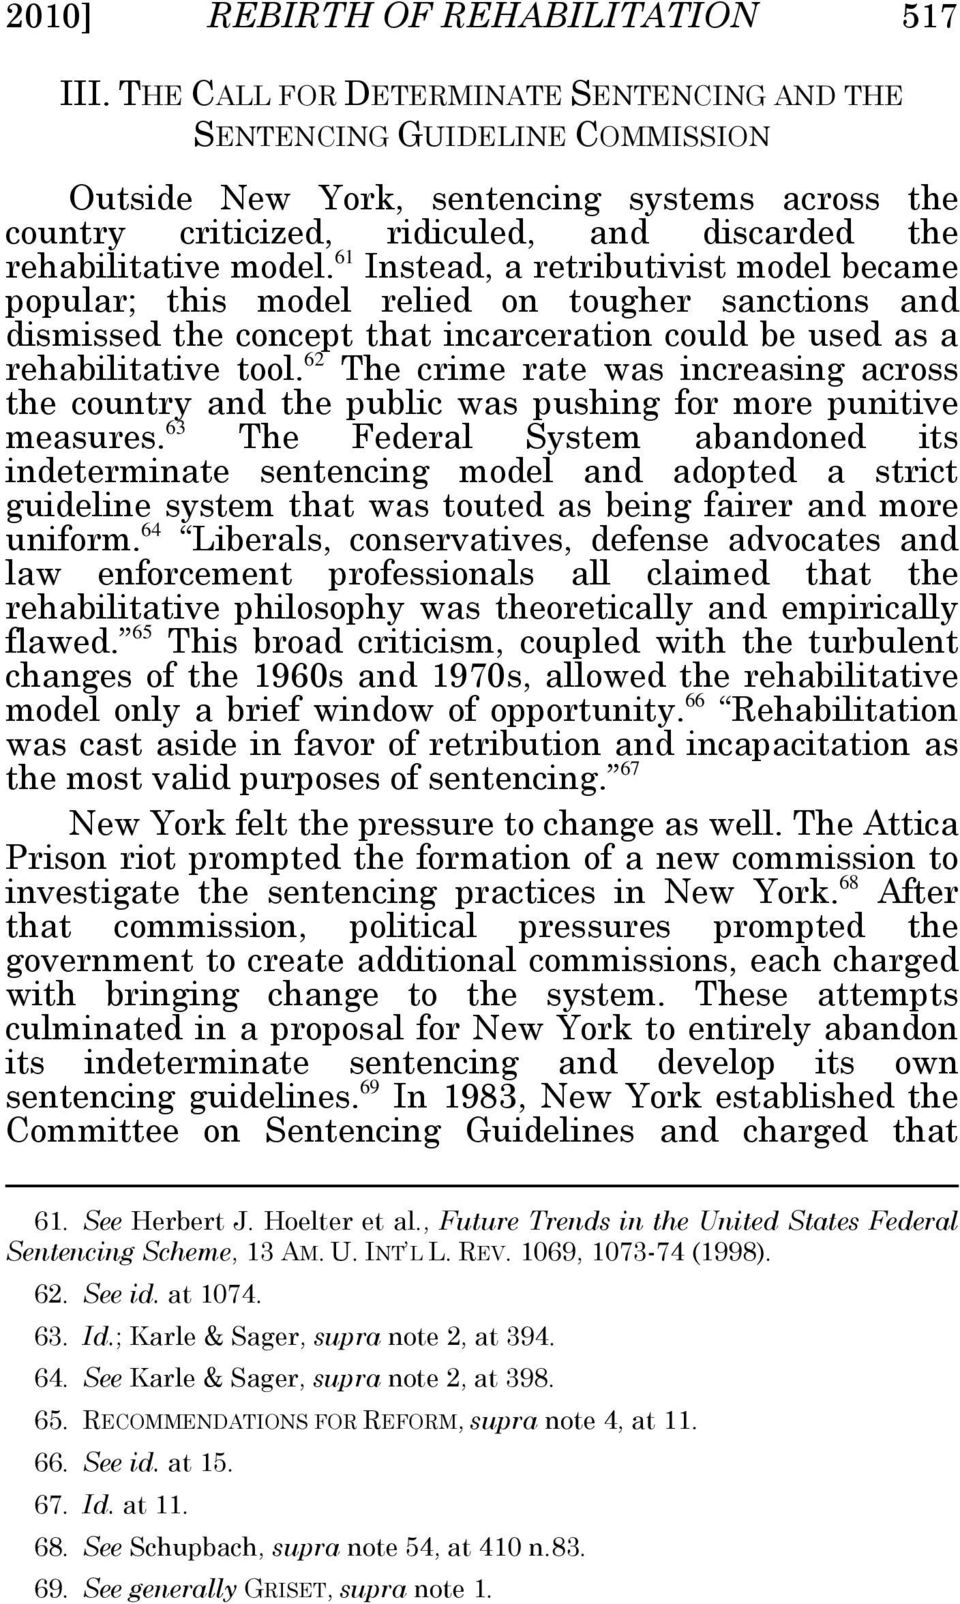 61 Instead, a retributivist model became popular; this model relied on tougher sanctions and dismissed the concept that incarceration could be used as a rehabilitative tool.